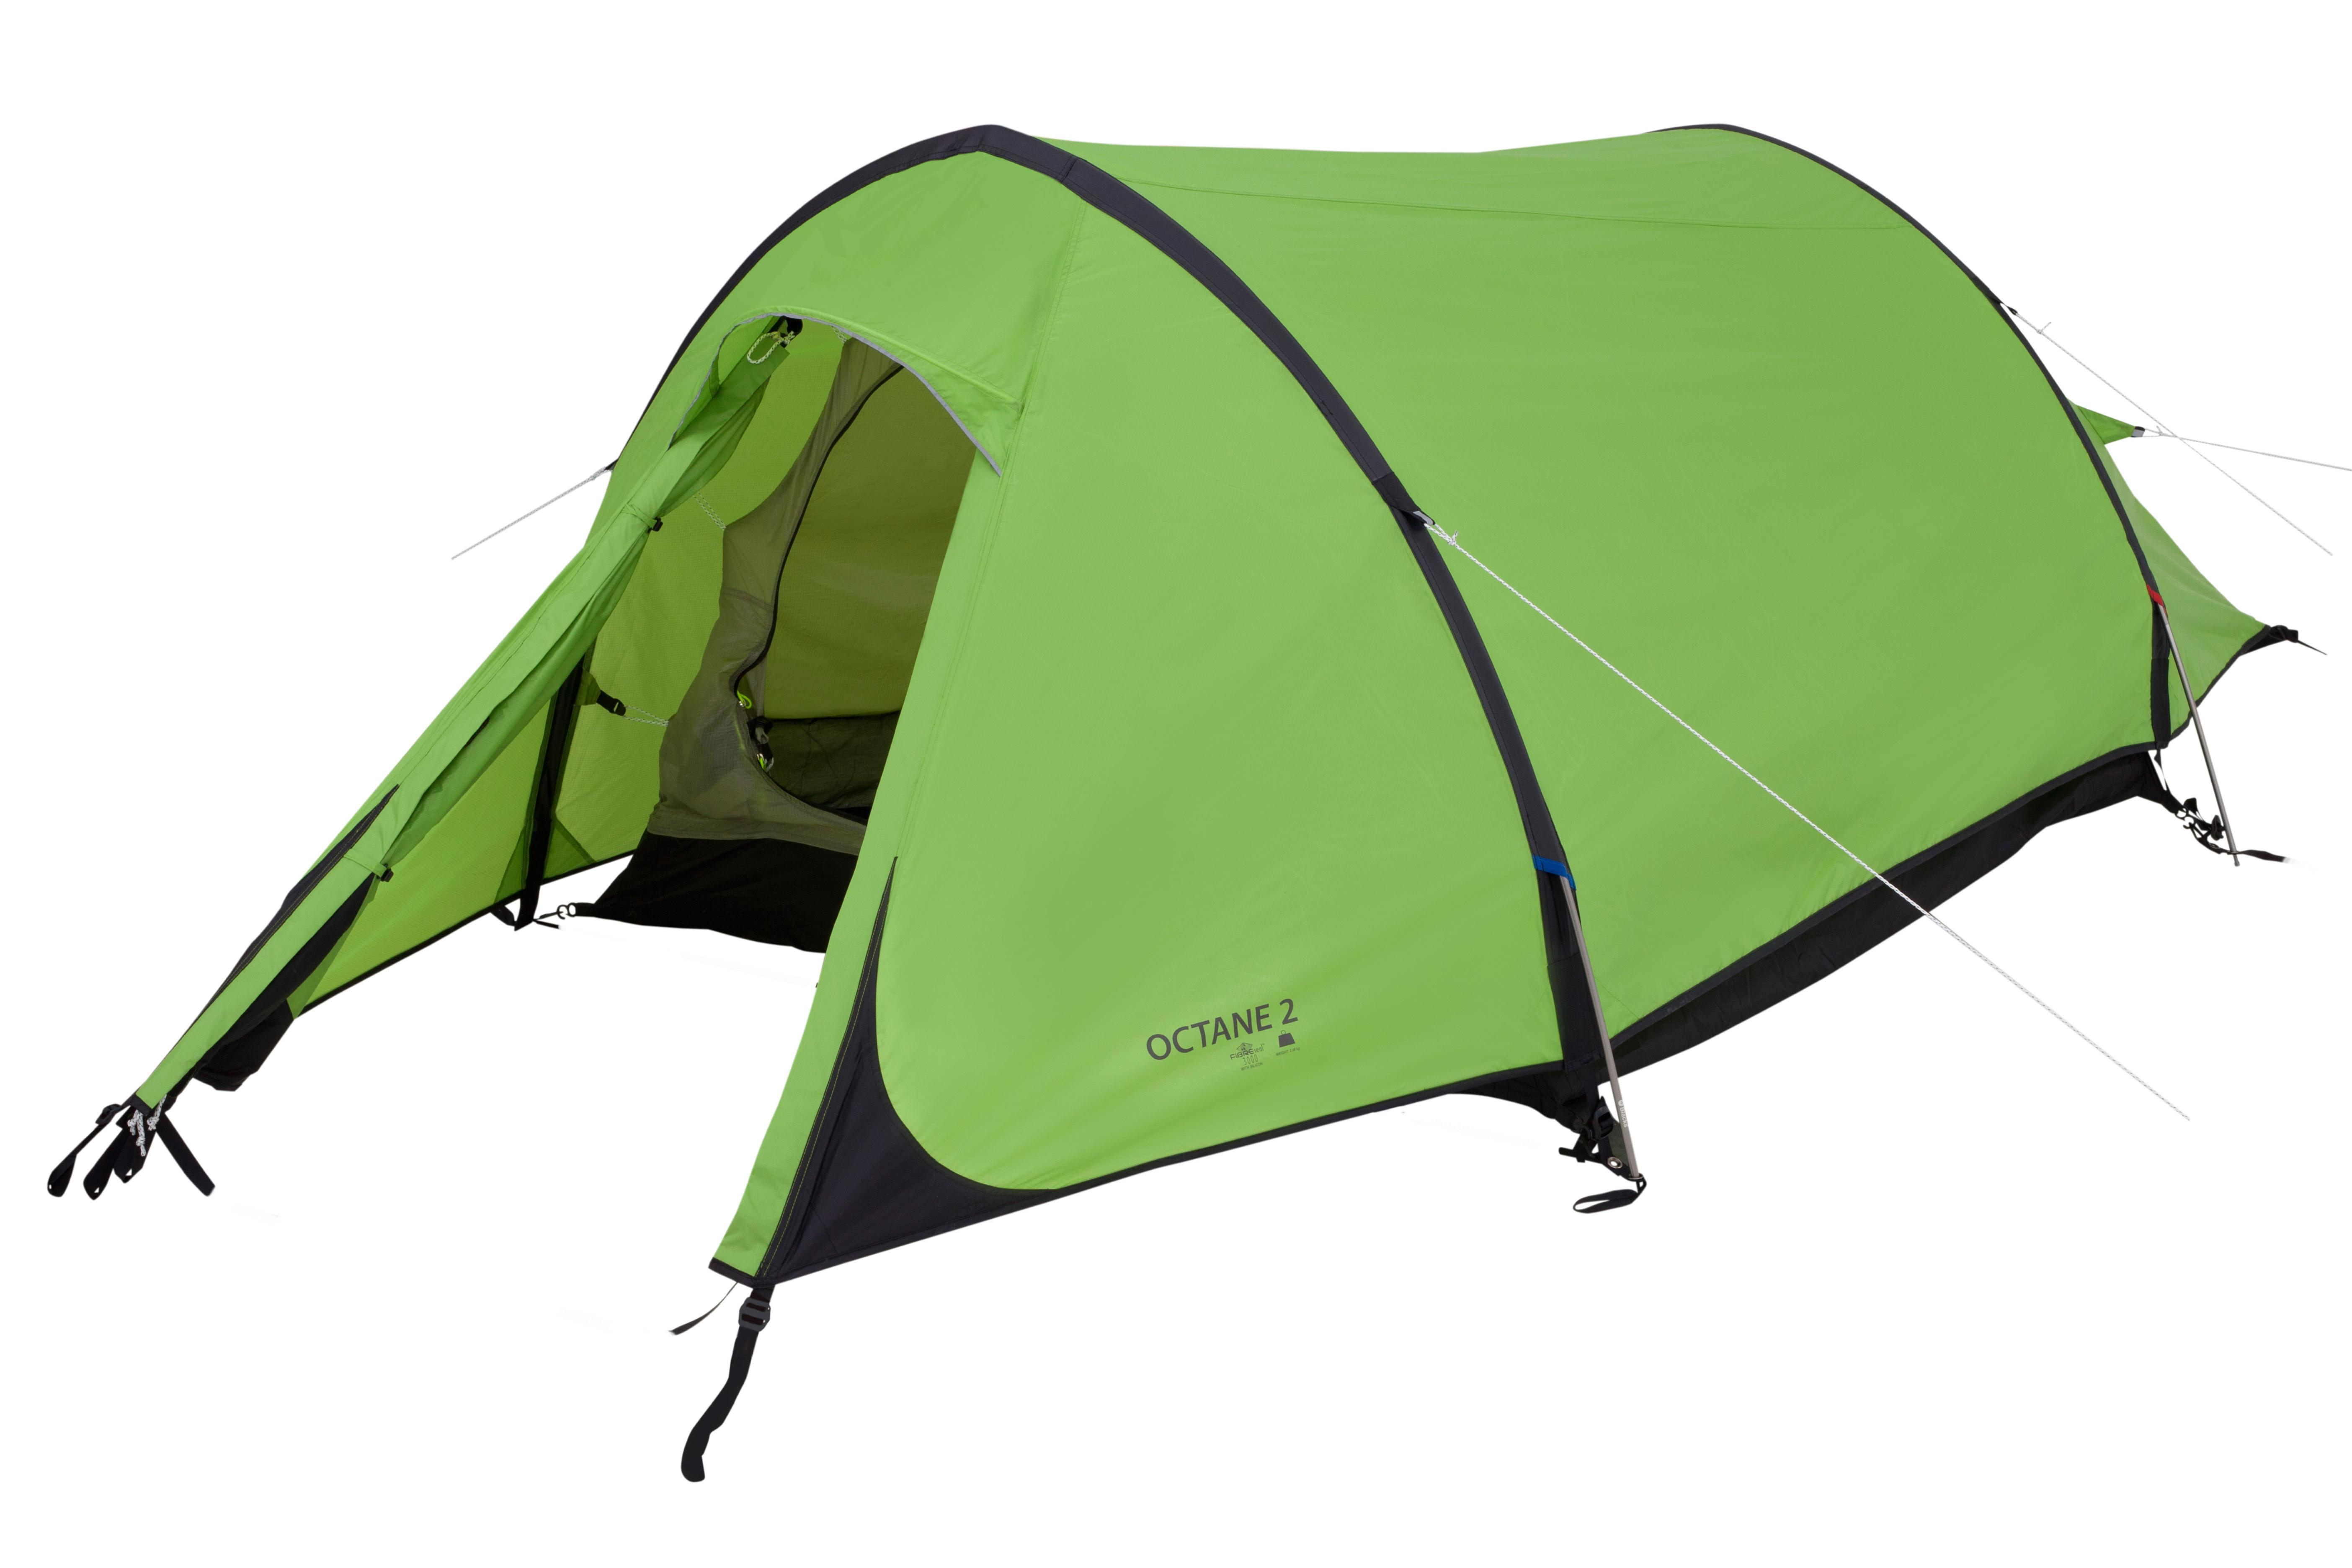 Blacks Apex Octane 2 Tunnel Tent Green Green  sc 1 st  Price Chaser & Tunnel tent | Shop for cheap Outdoor Adventure and Save online